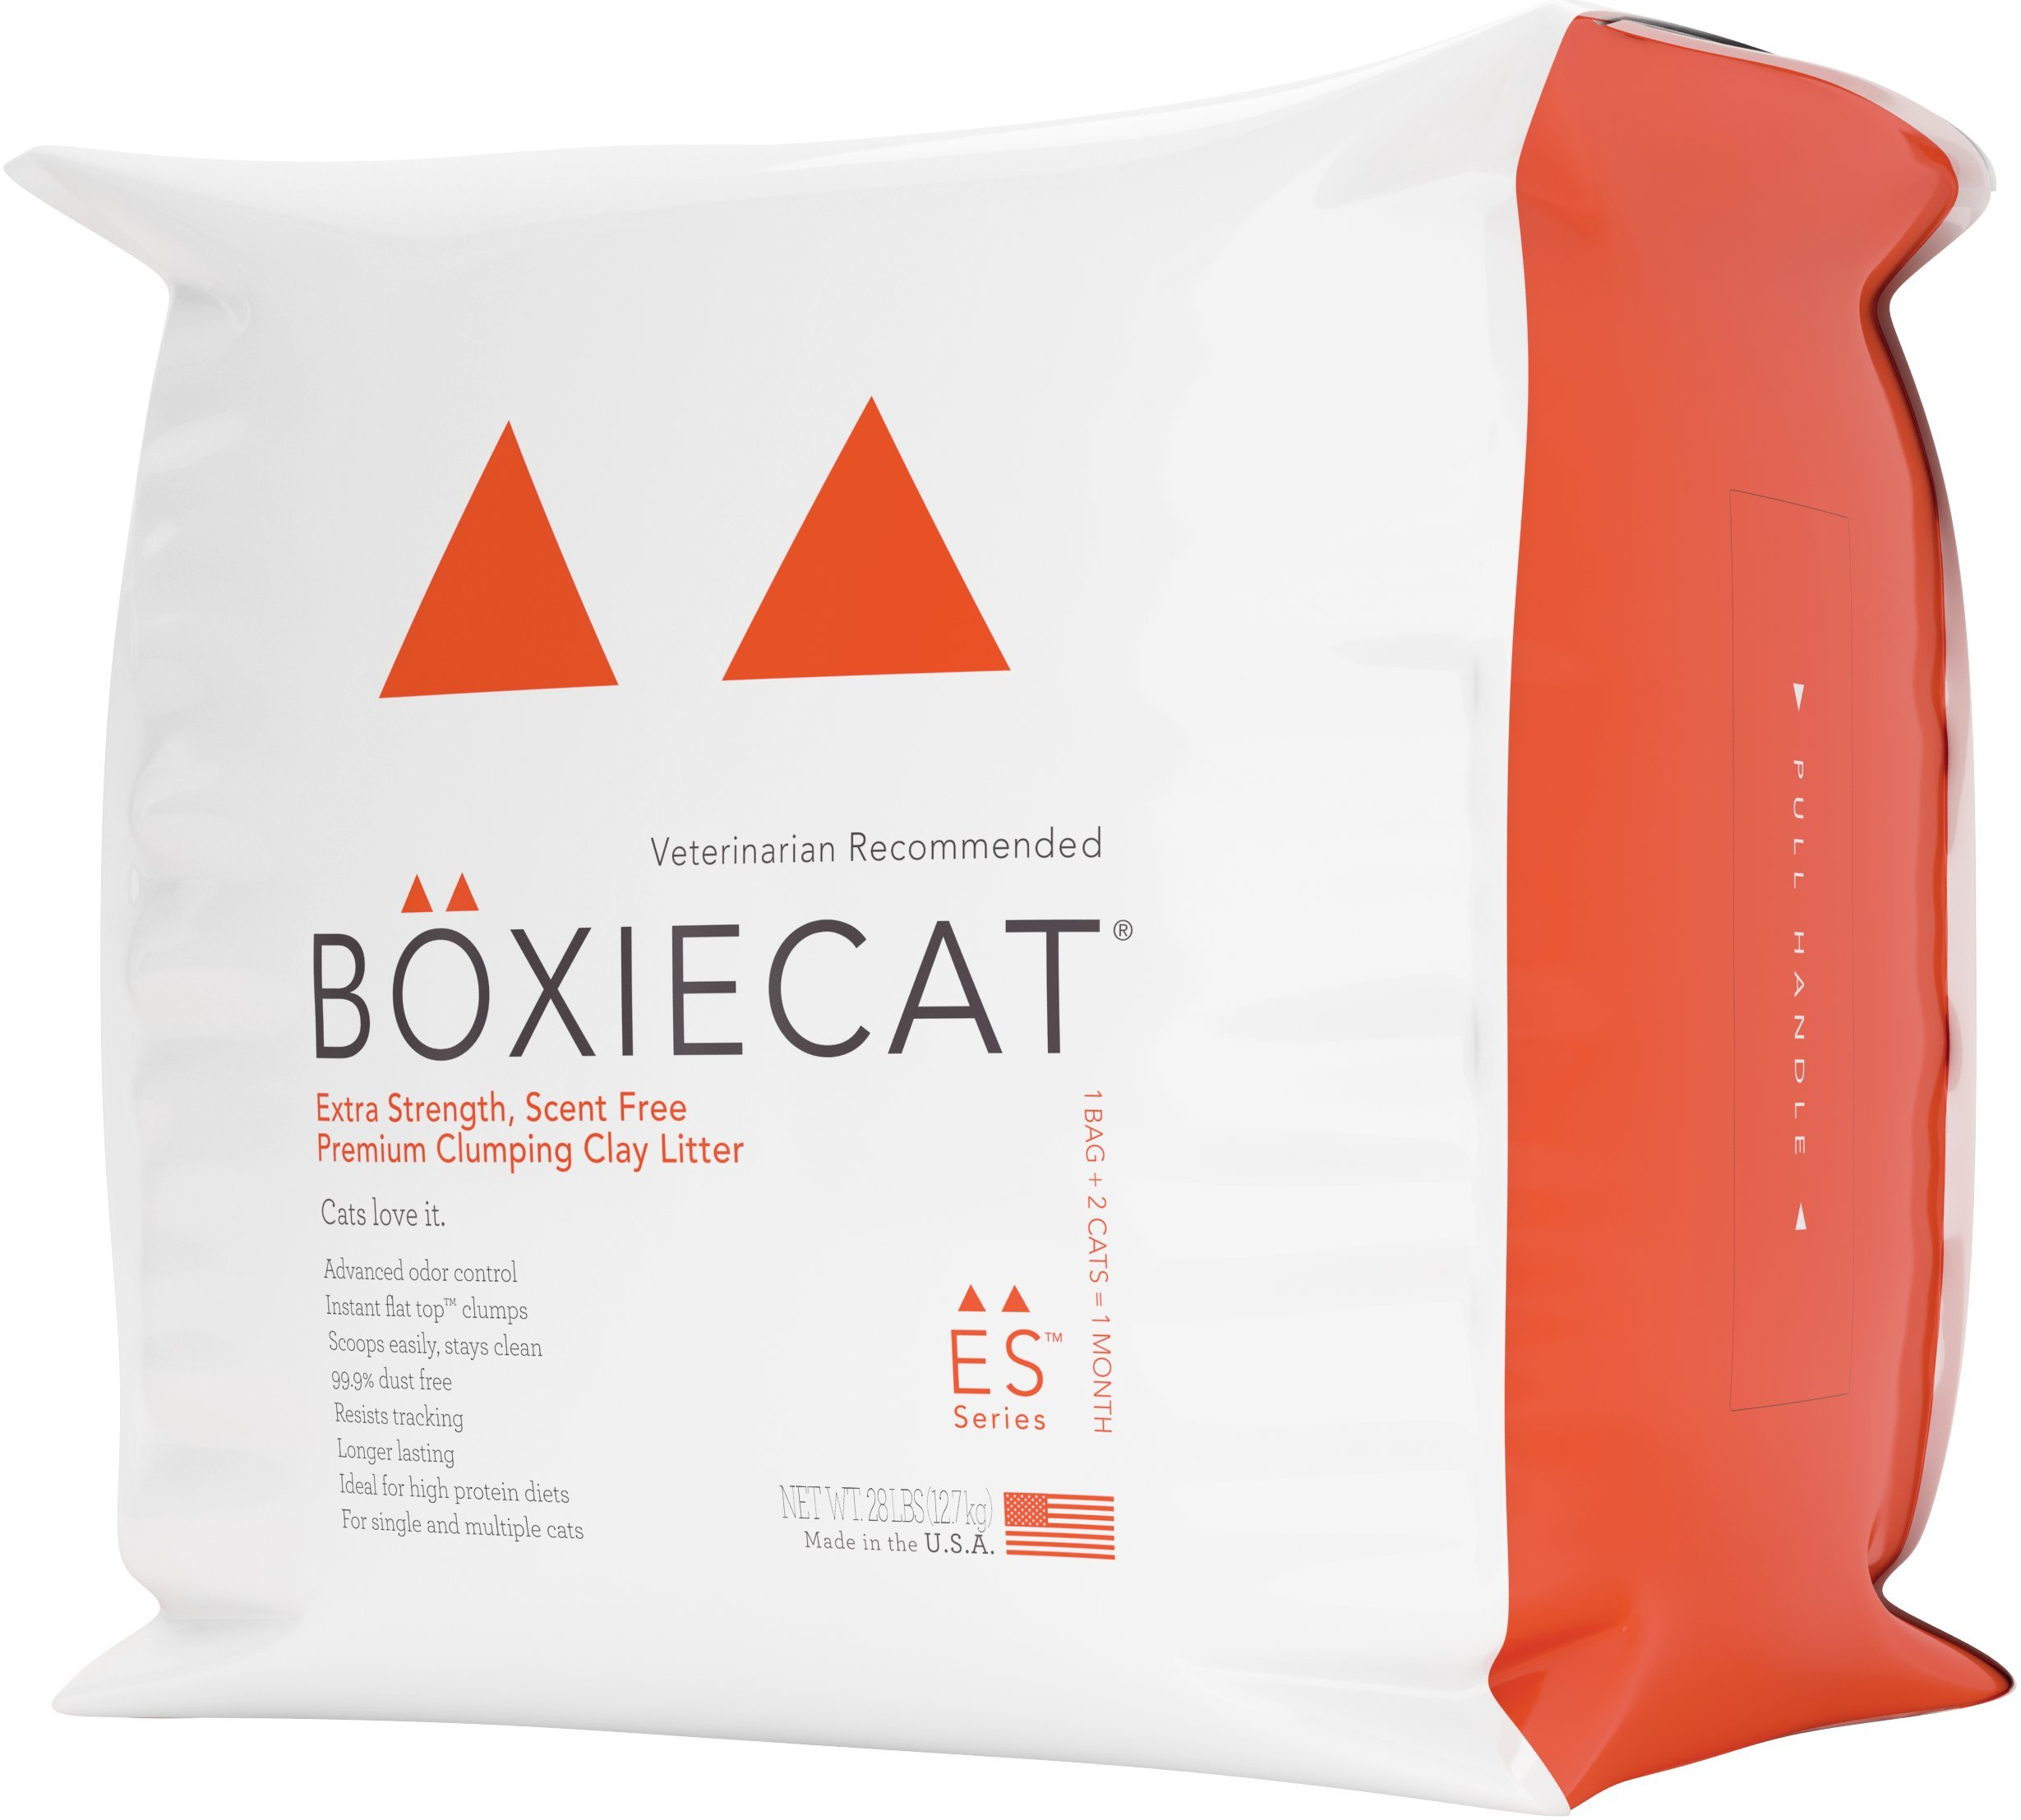 Boxiecat Extra Strength Premium Clumping Clay Cat Litter